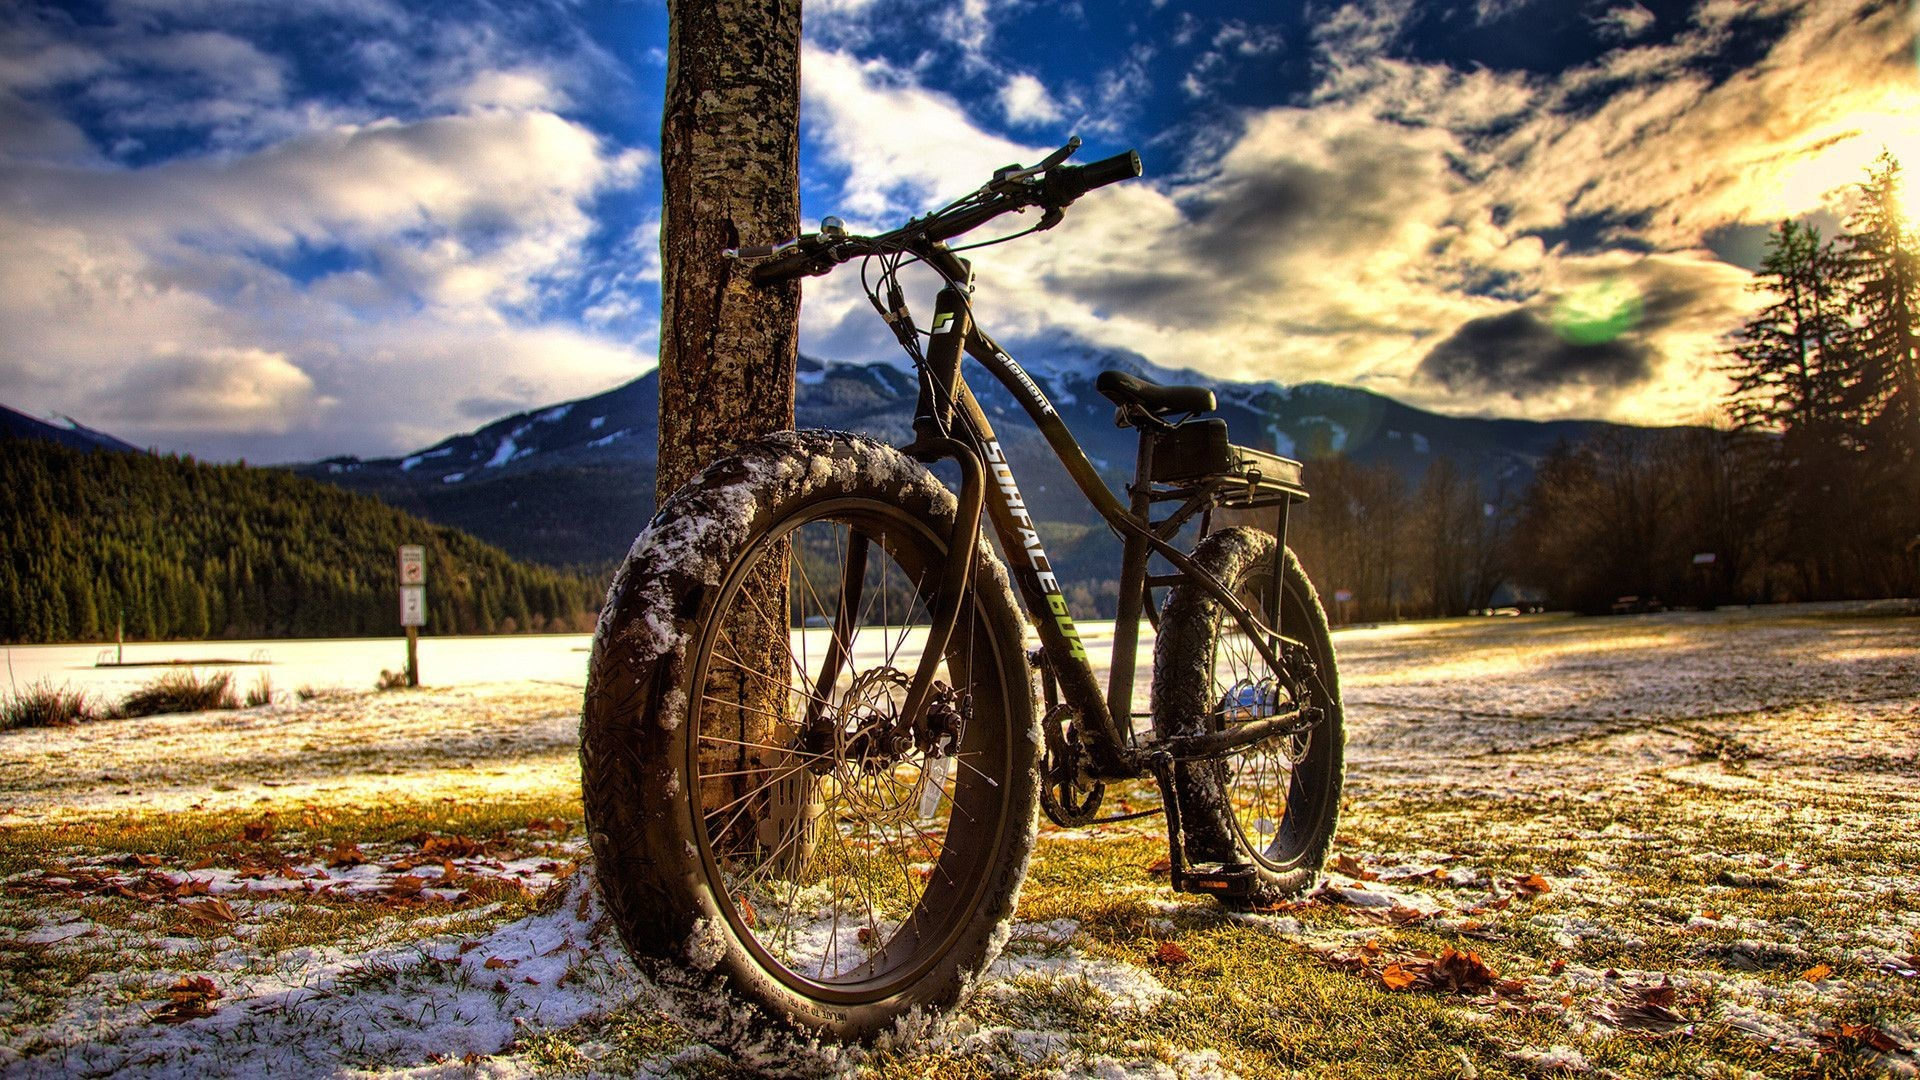 1920x1080  Hdr Mountain Bike Wallpaper 1600x900 Wallpaper Bike Wallpapers  Free Download Abyss Anime League Of Legends